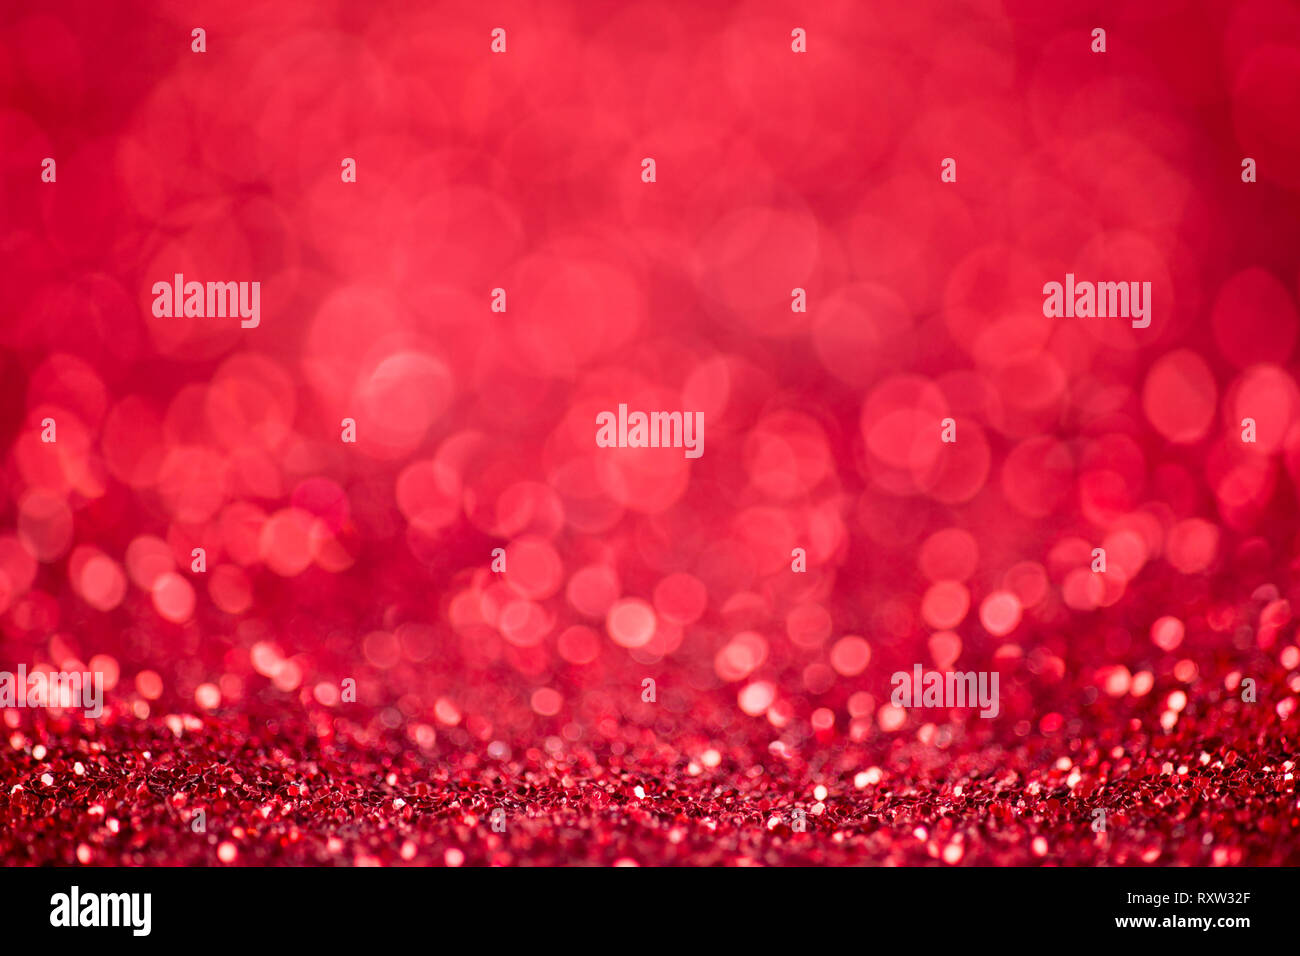 Red glitter christmas abstract background - Stock Image